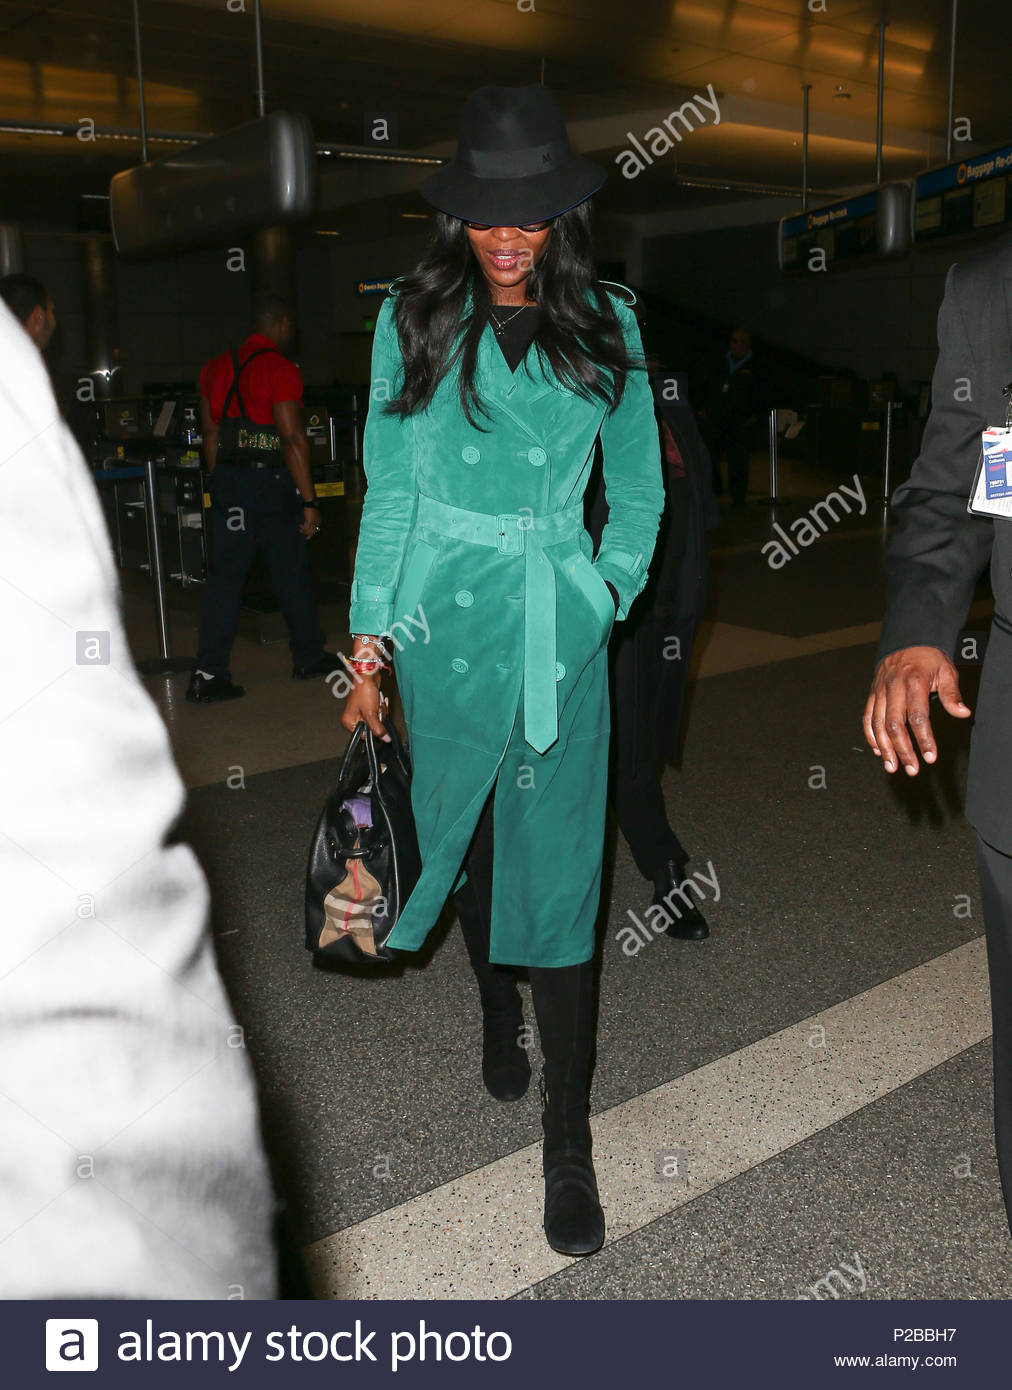 Naomi Campbell Mandatory Byline To Read Infphotocom Onlybr Coat Is Seen Arriving At Lax International Airport In Los Angeles California Wearing A Bright Green